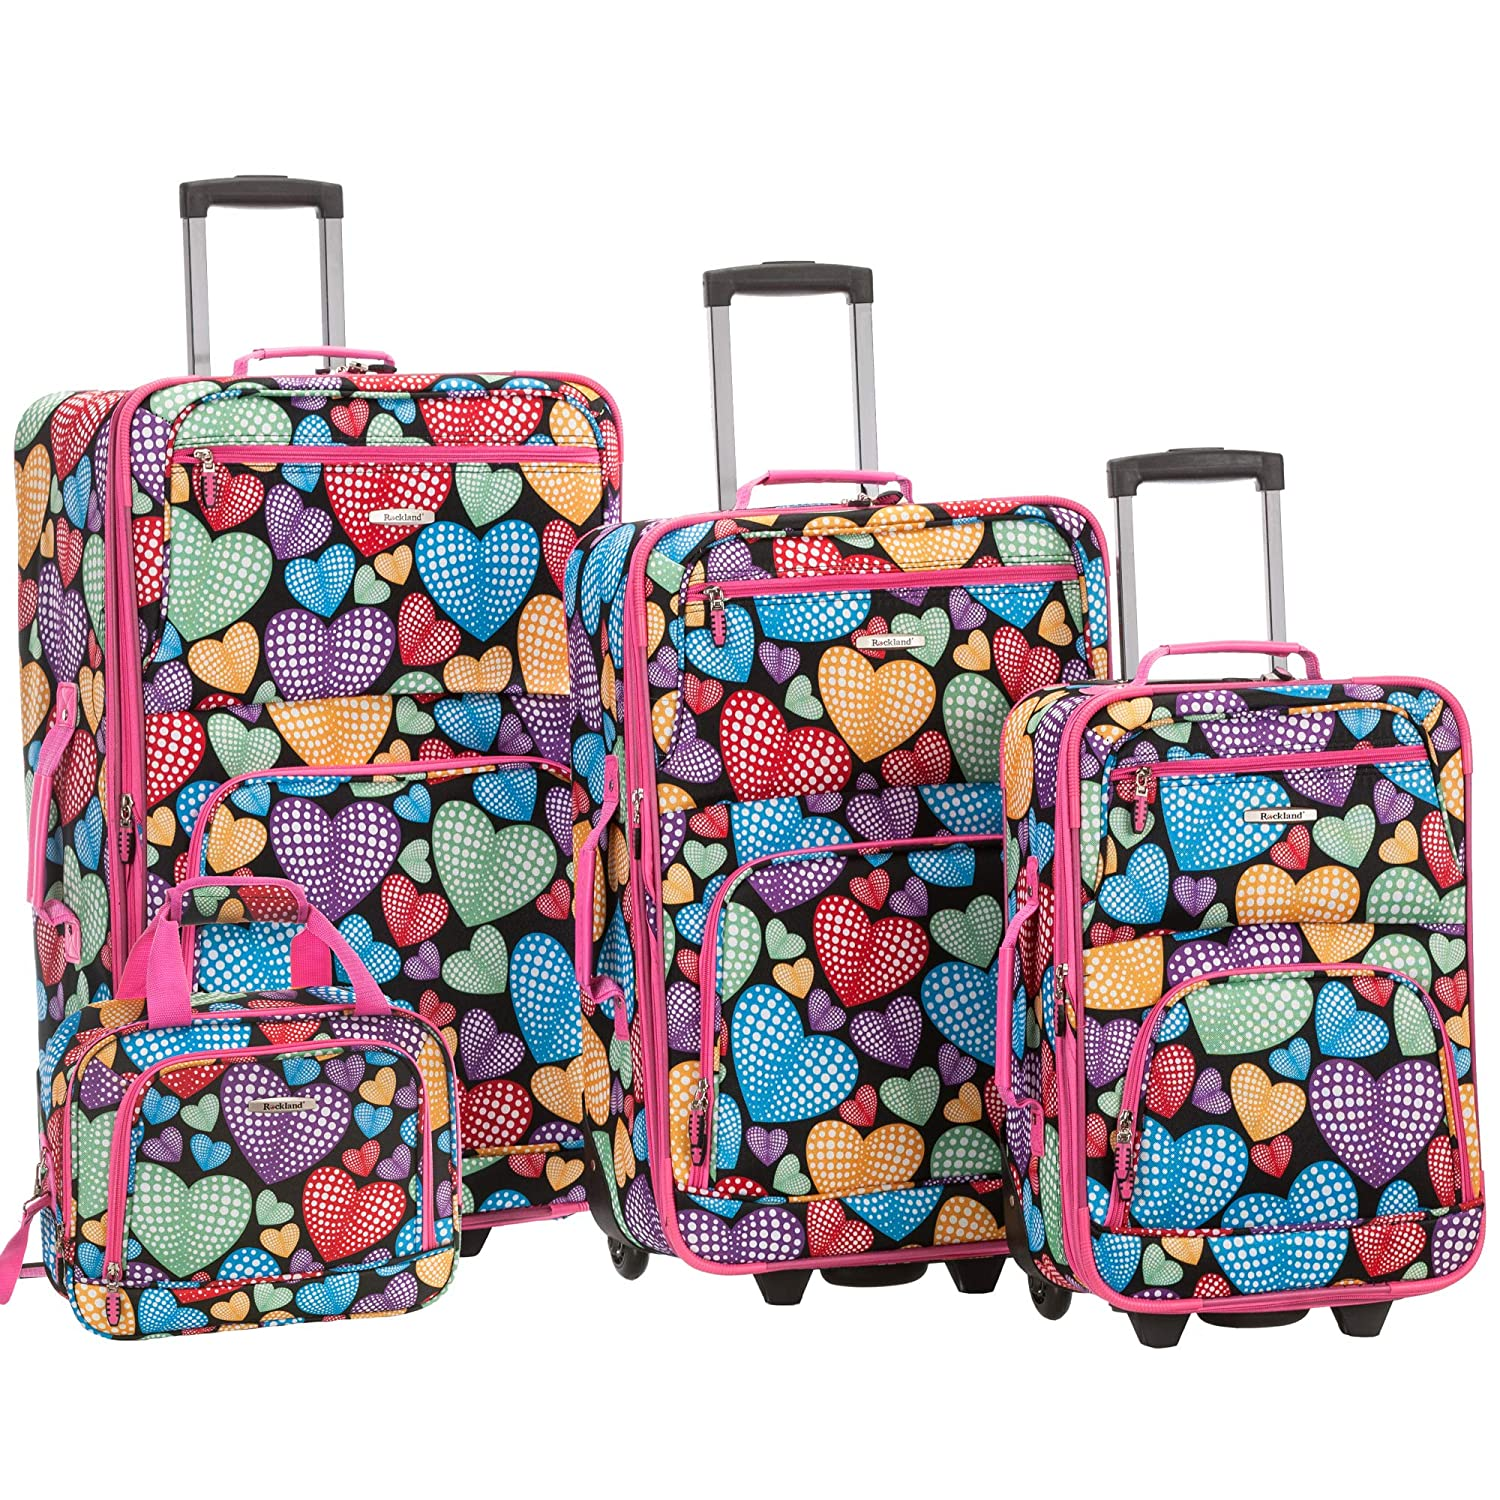 Rockland 4 Piece New Heart Luggage Set Newheart One Size Fox Luggage F125-NEWHEART